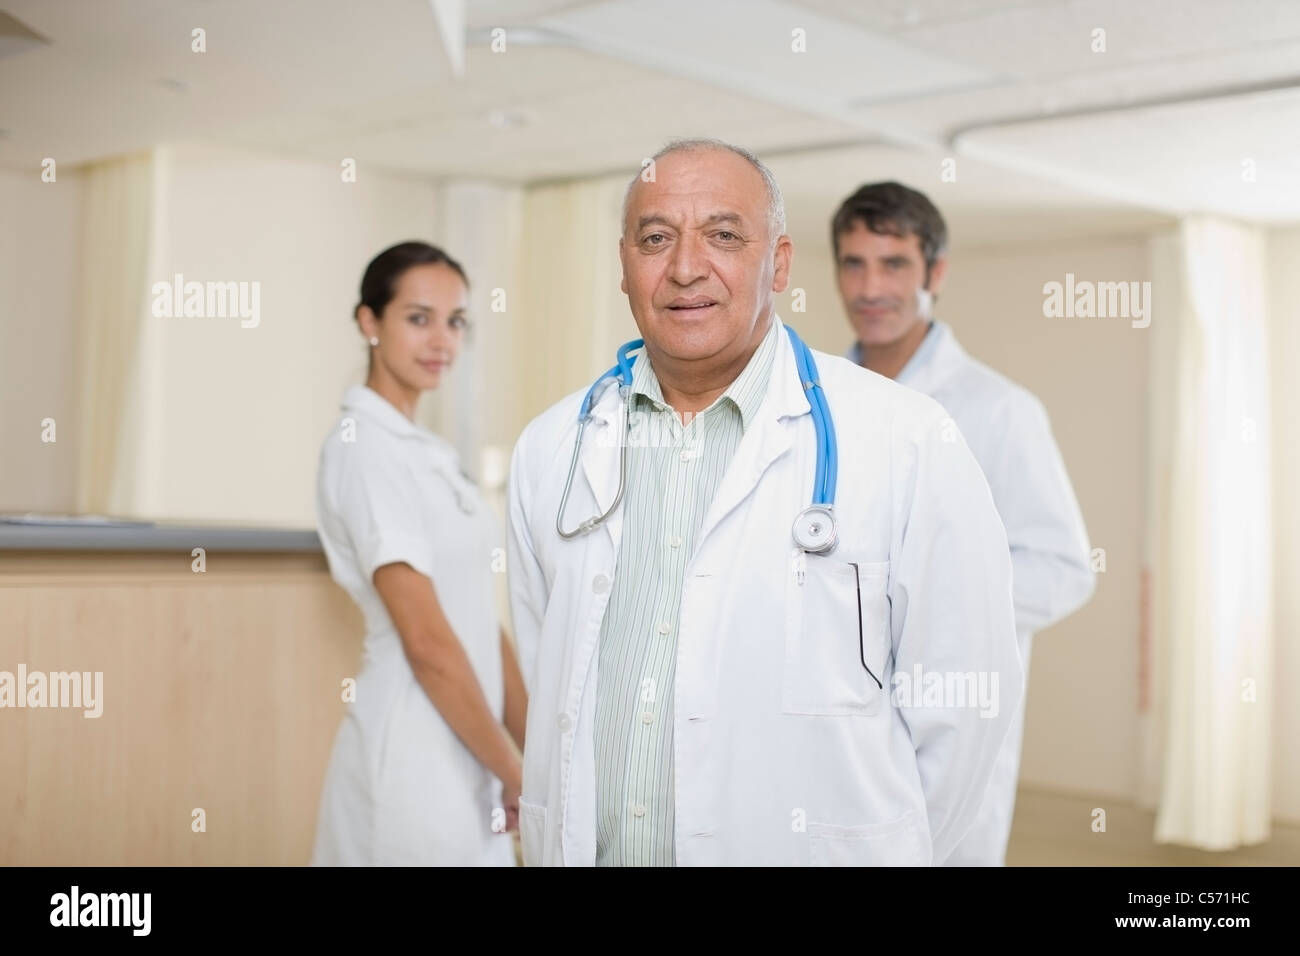 Doctors and nurse standing in hospital - Stock Image